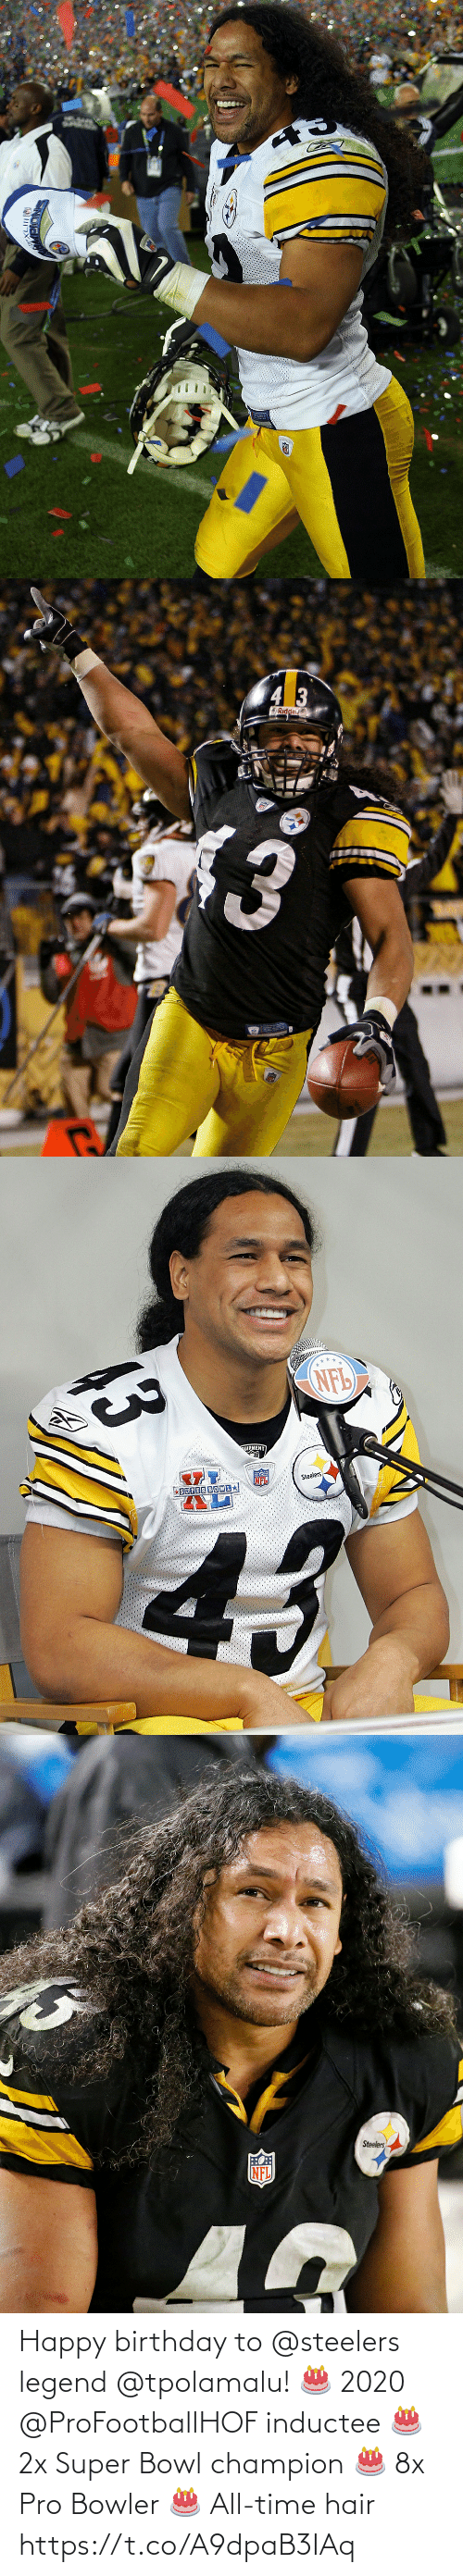 Birthday: Happy birthday to @steelers legend @tpolamalu! 🎂 2020 @ProFootballHOF inductee 🎂 2x Super Bowl champion 🎂 8x Pro Bowler 🎂 All-time hair https://t.co/A9dpaB3IAq